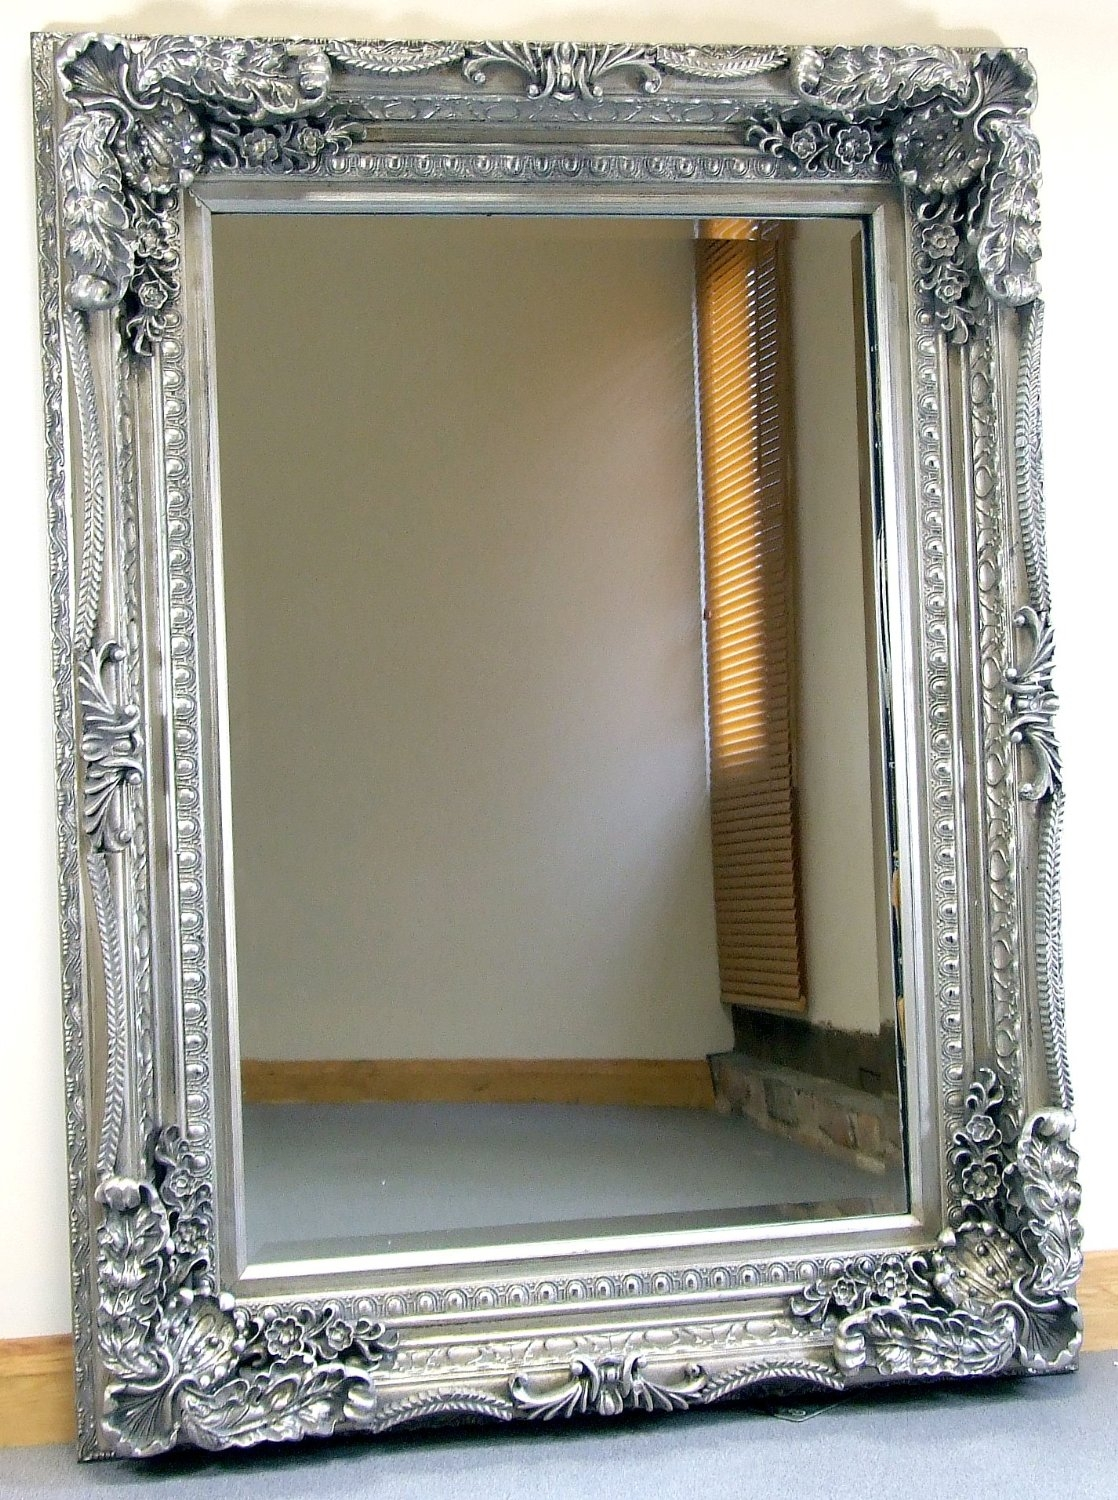 Carved Louis Silver Ornate French Frame Wall Over Mantle Mirror Within Silver Ornate Framed Mirror (Image 3 of 15)